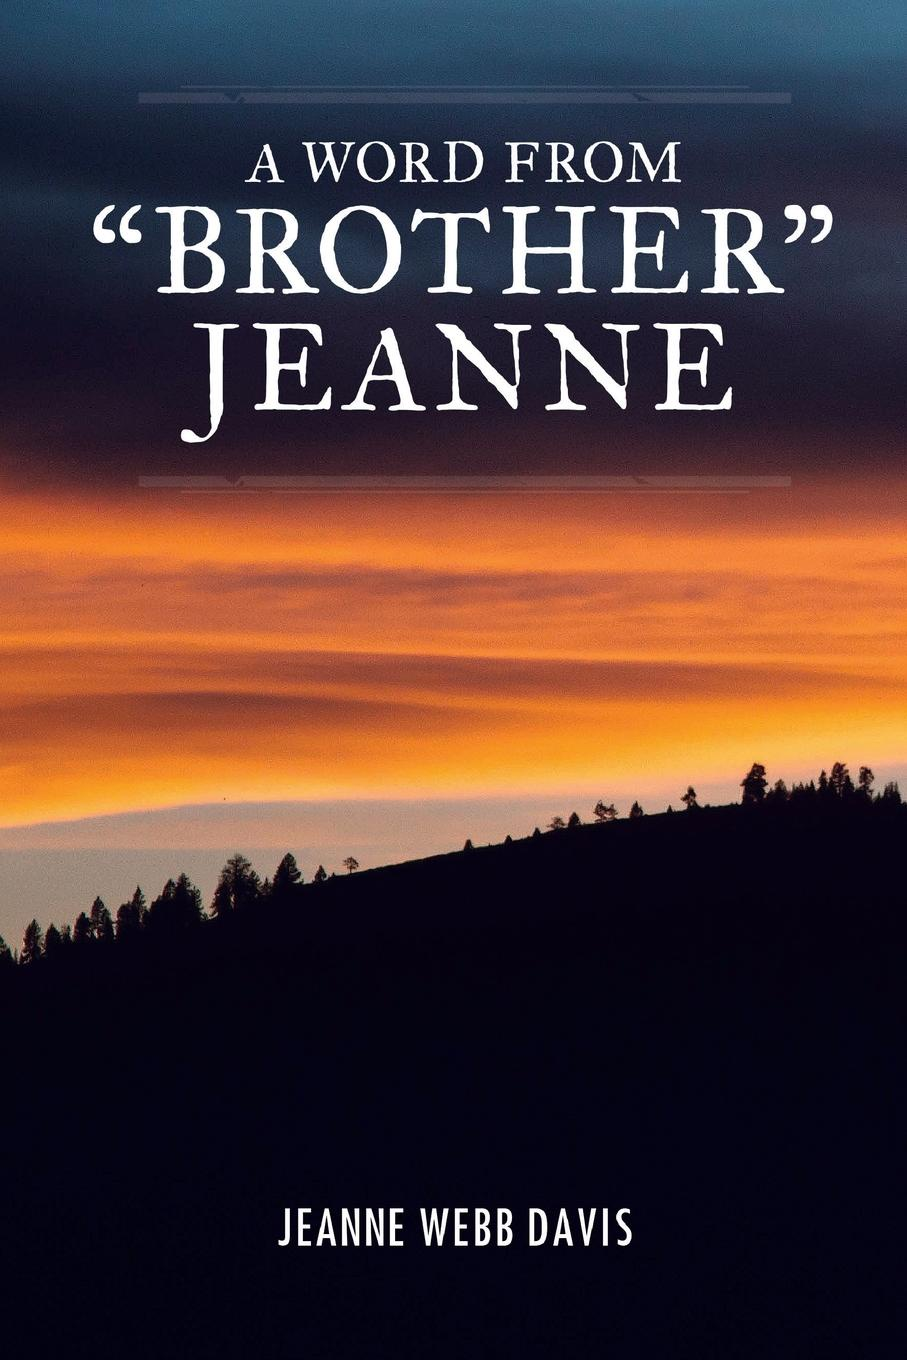 Jeanne Webb Davis A Word from Brother Jeanne jeanne kalogridis the devil's queen